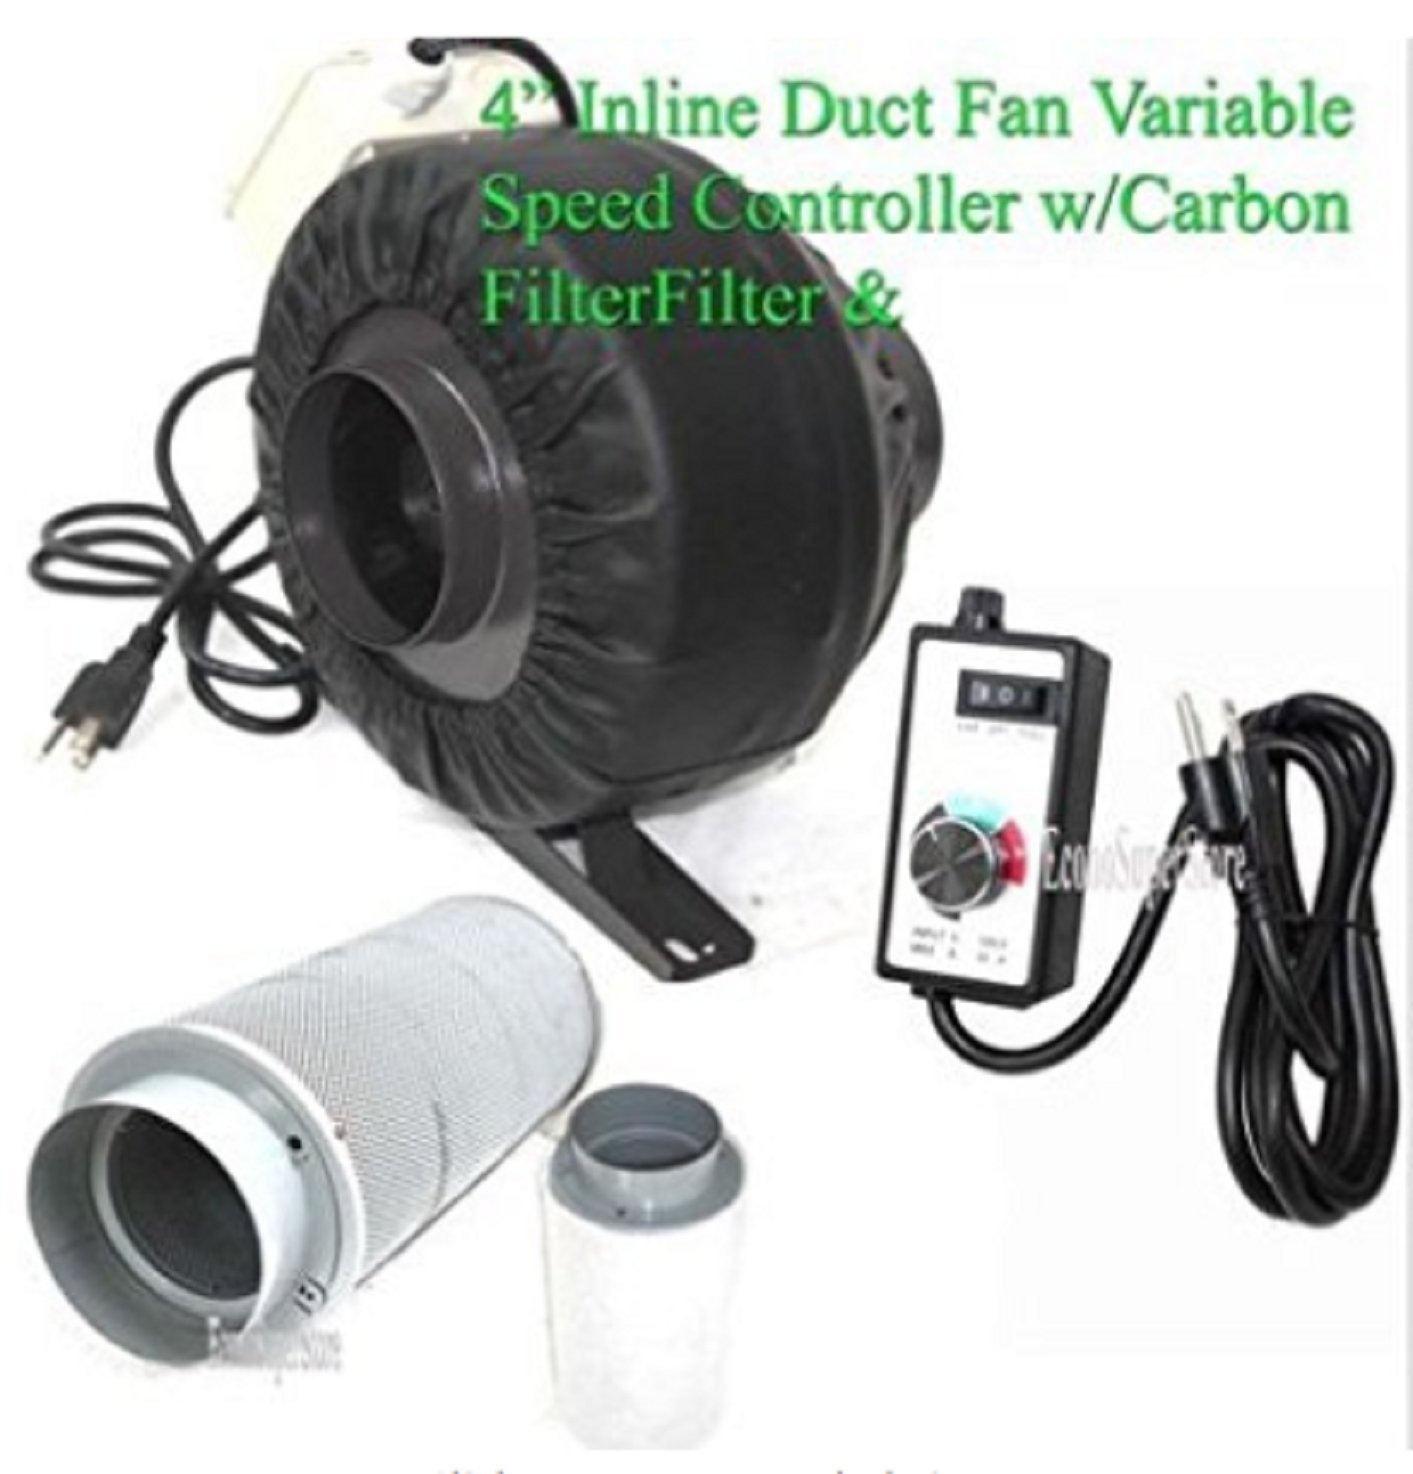 USA Premium Store 4'' Variable Speed Control Inline Hydroponic Duct Fan Blower 190CFM Carbon Filter by USA Premium Store